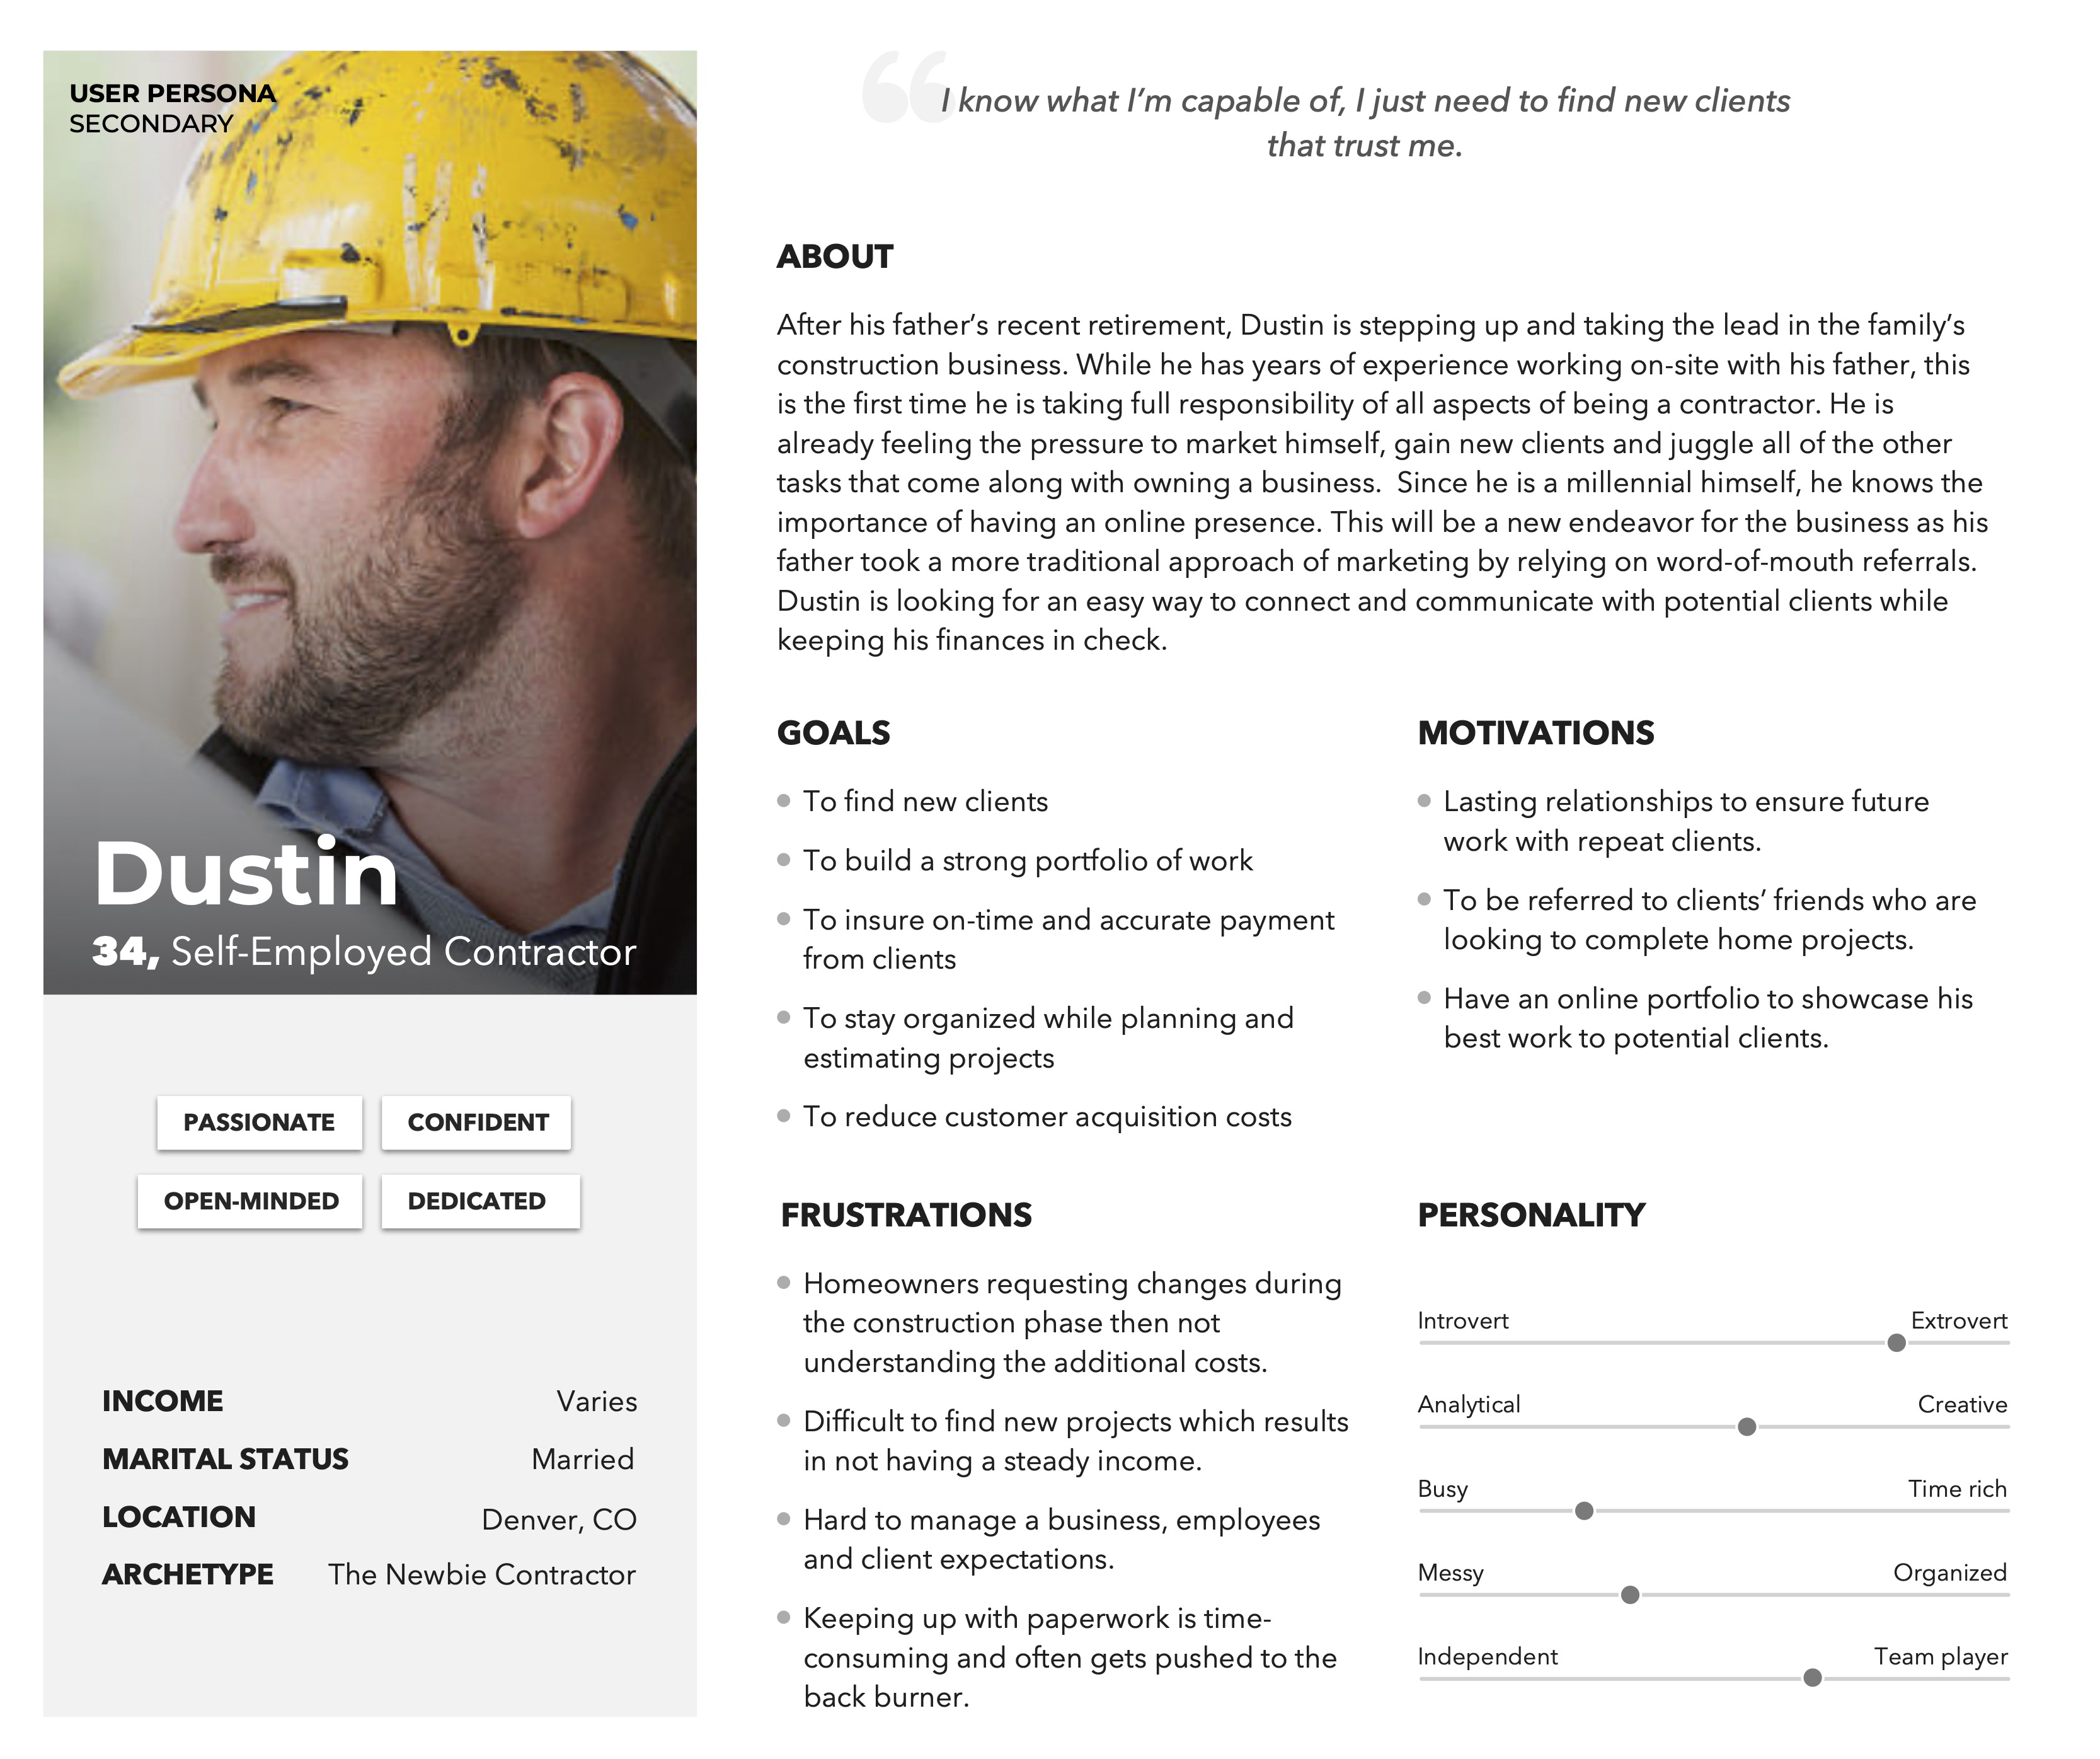 Secondary persona: new construction business owner looking to grow his client base